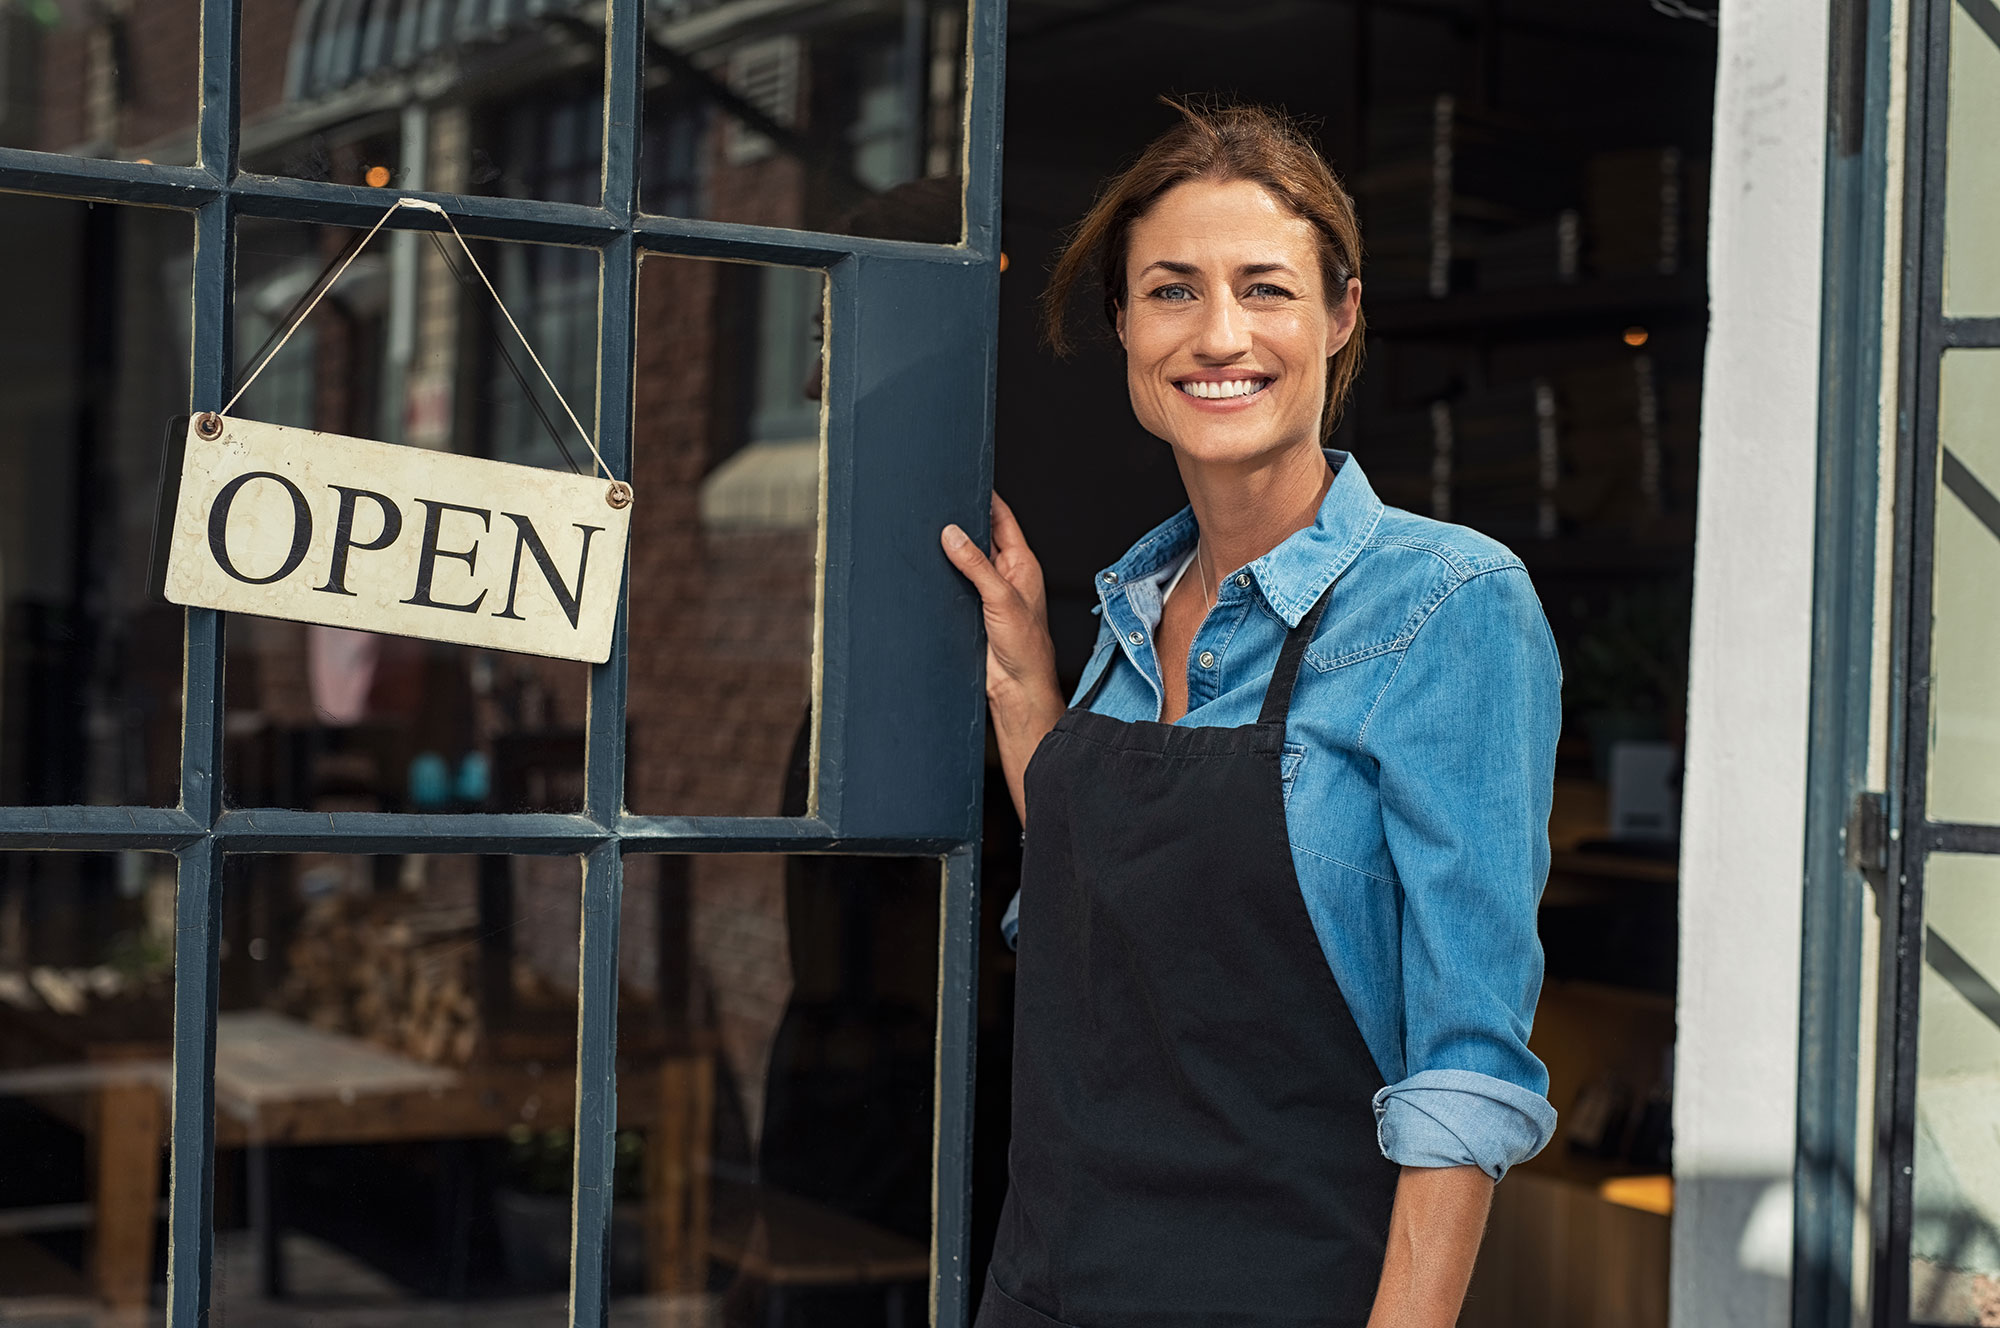 self employed immigration Canada requirements, self employed work experience express entry